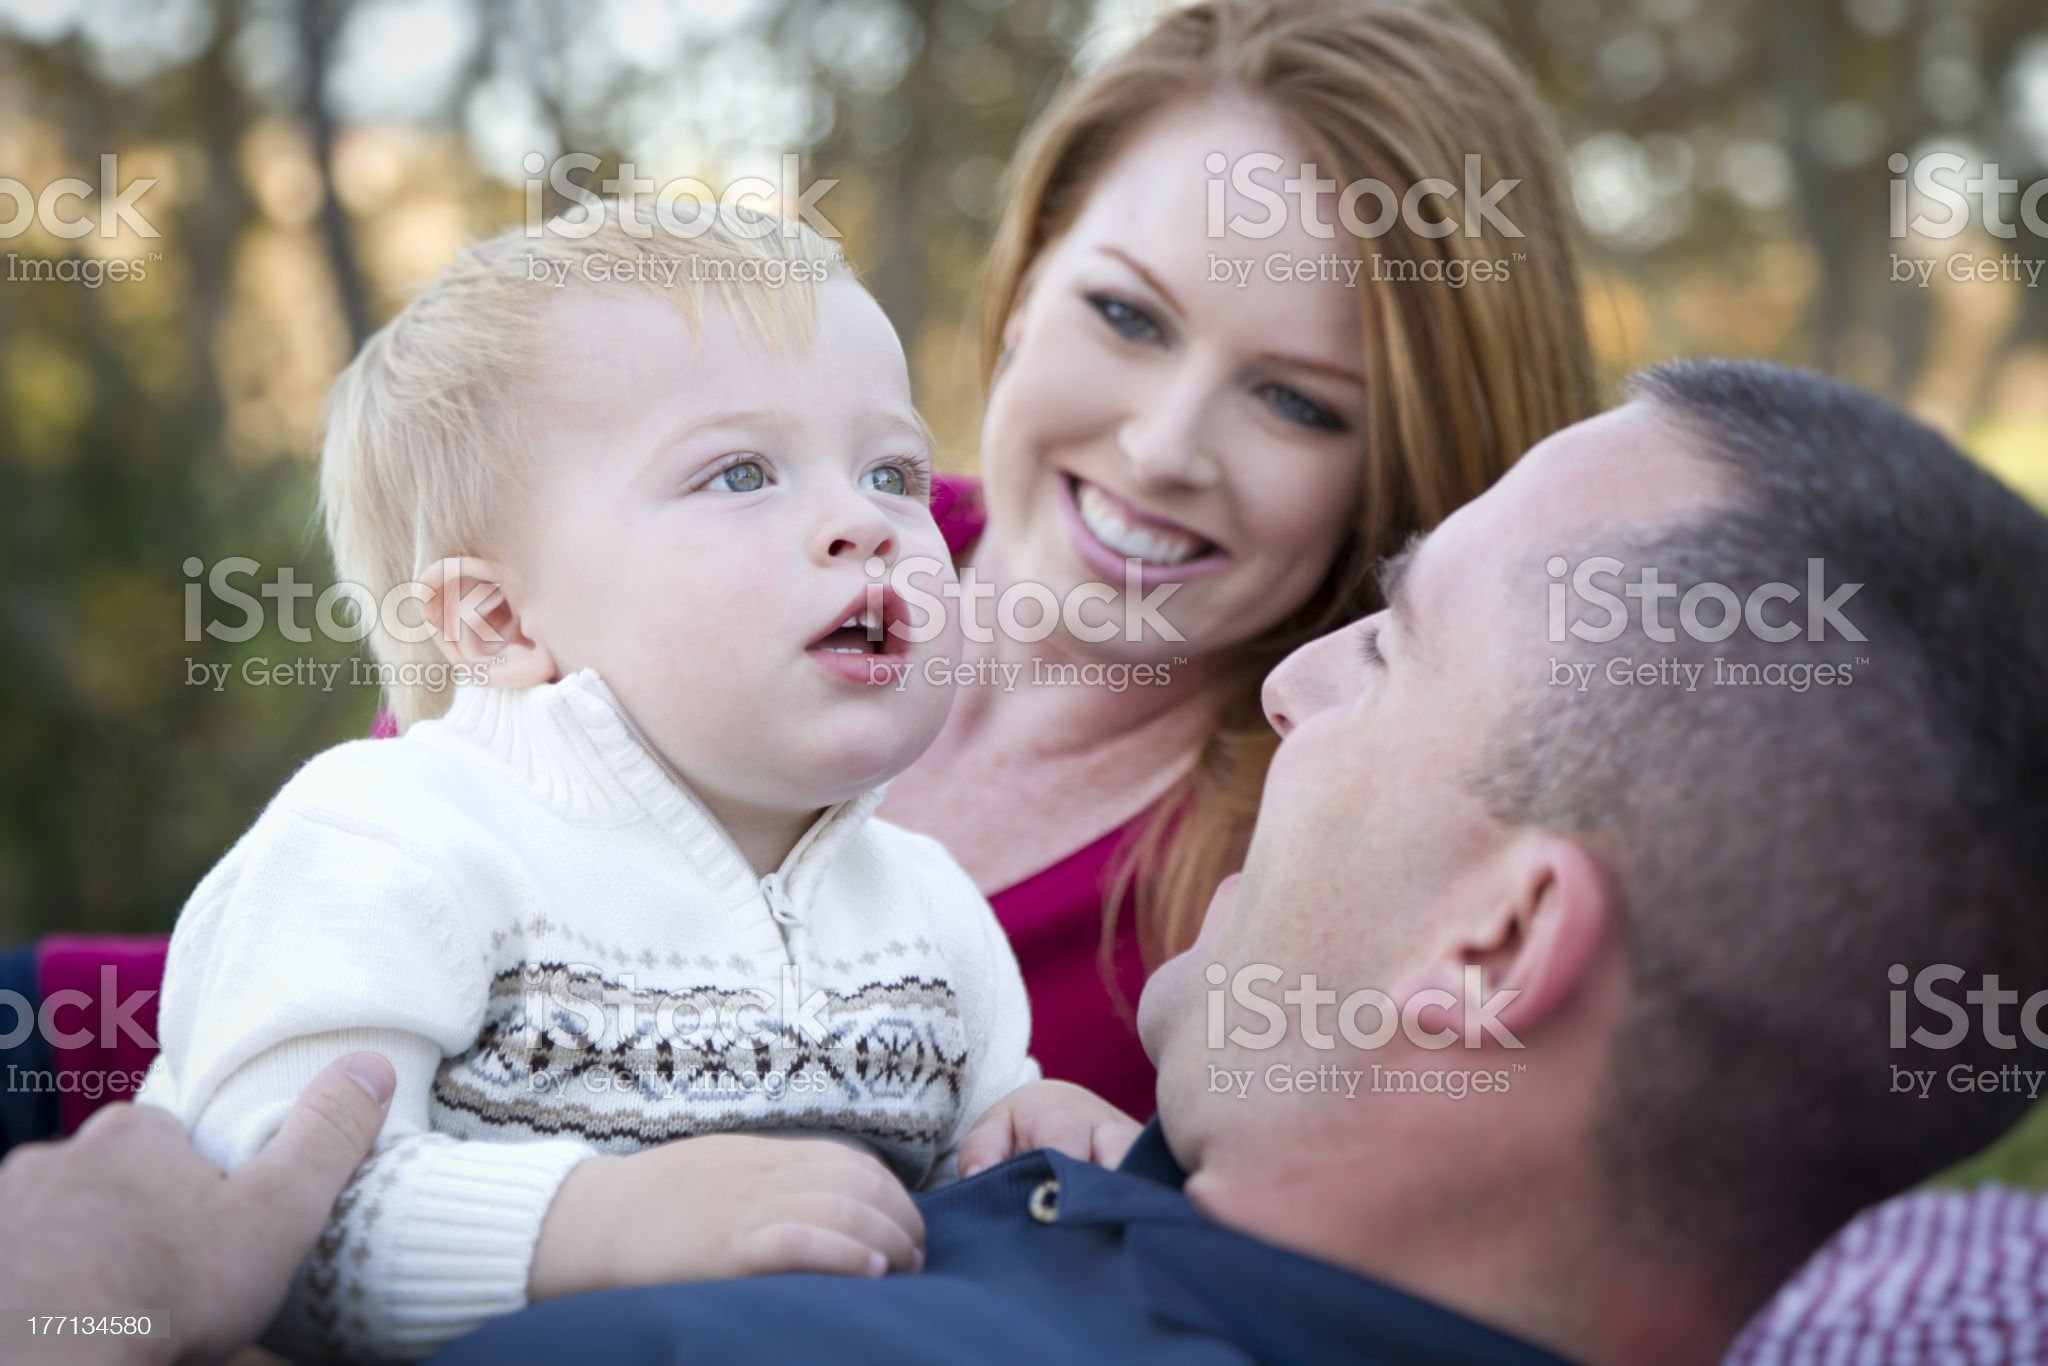 Cute Child Looks Up to Sky as Young Parents Smile royalty-free stock photo